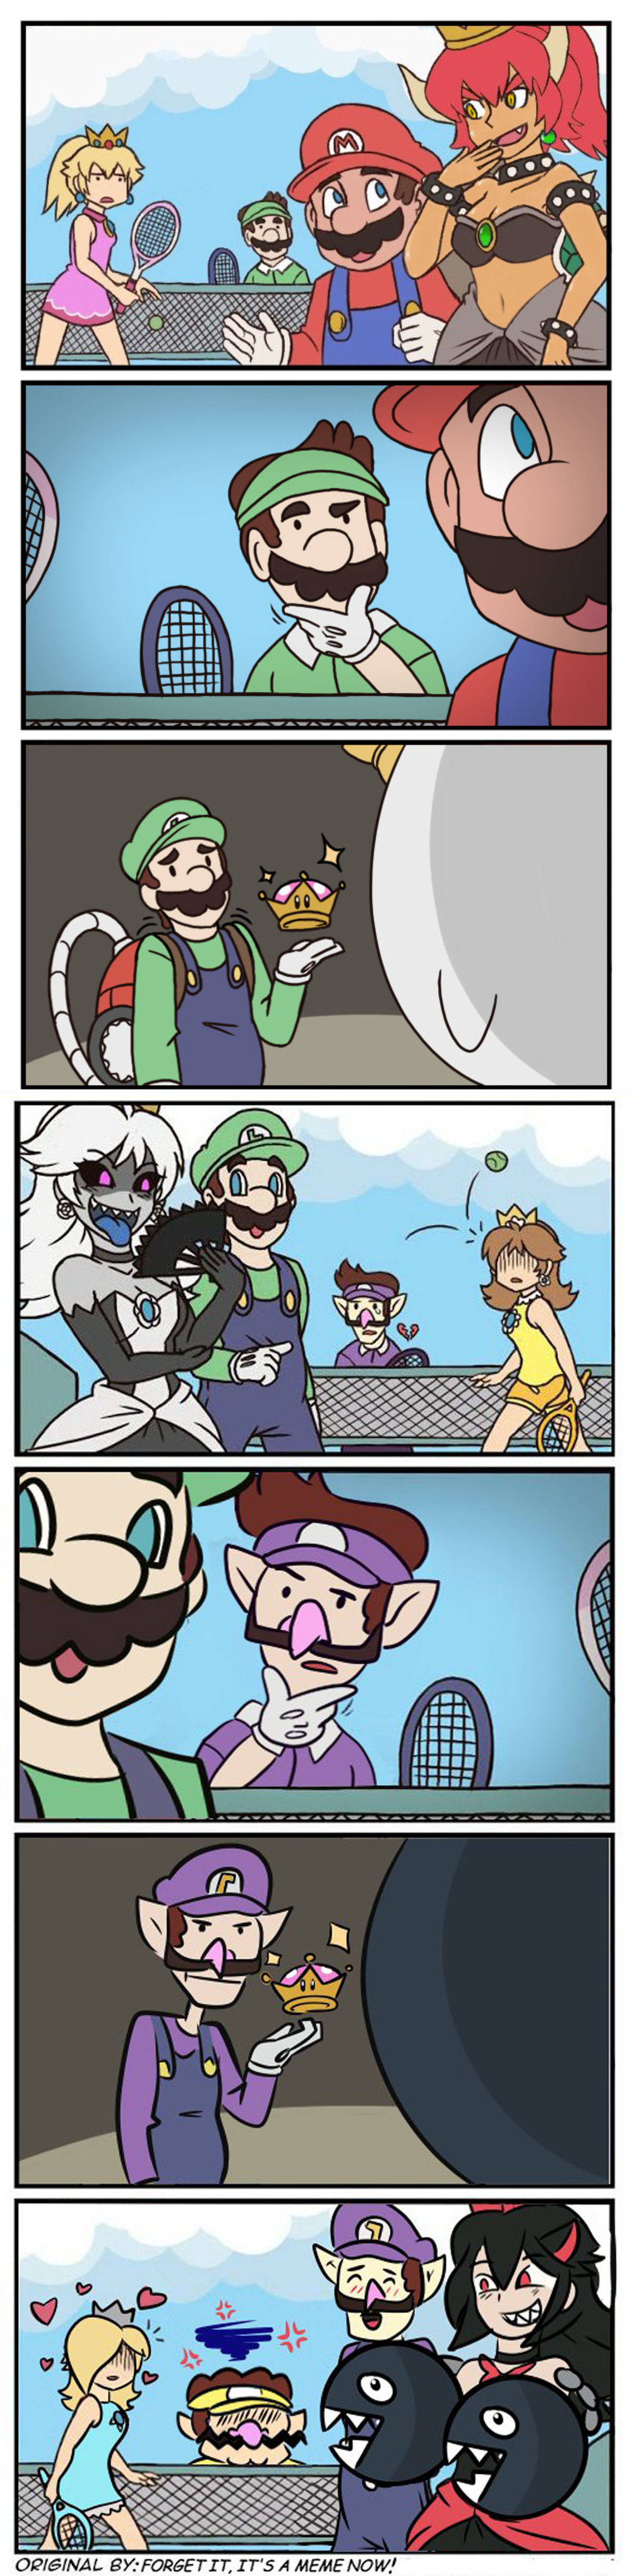 woebegone attractive infamous Cattle. .. Waluigi proving to be a man of culture